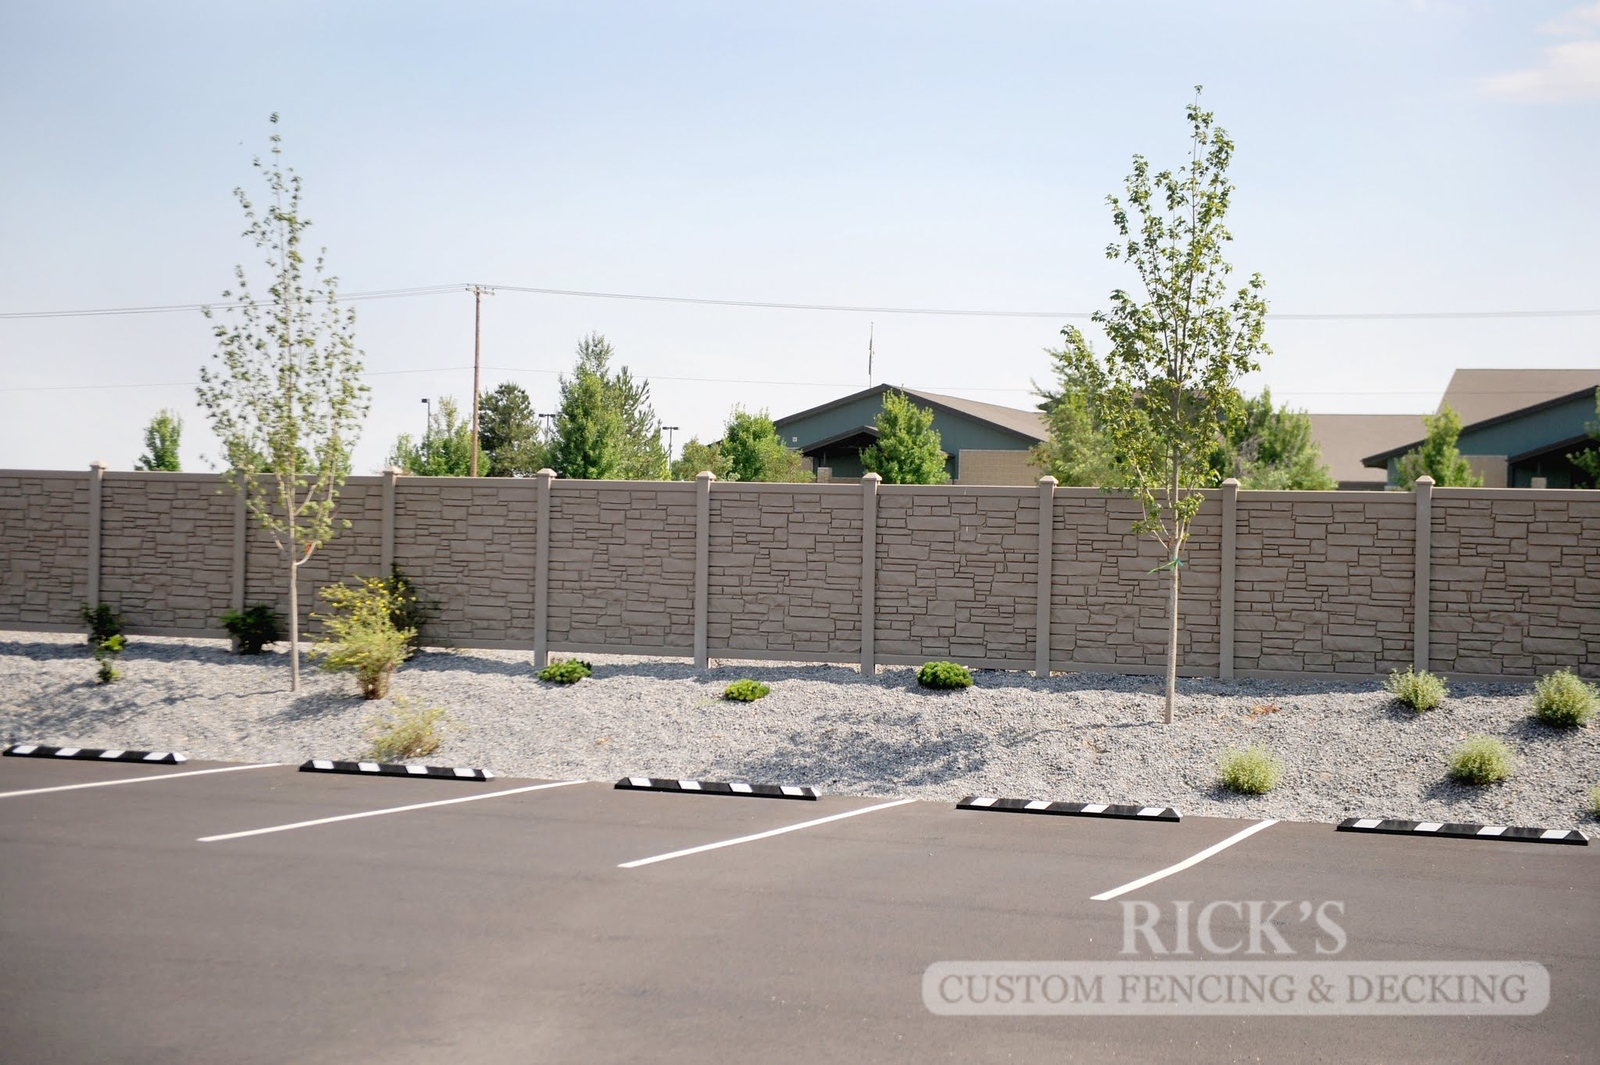 4027 - Allegheny Simulated Rock Fencing